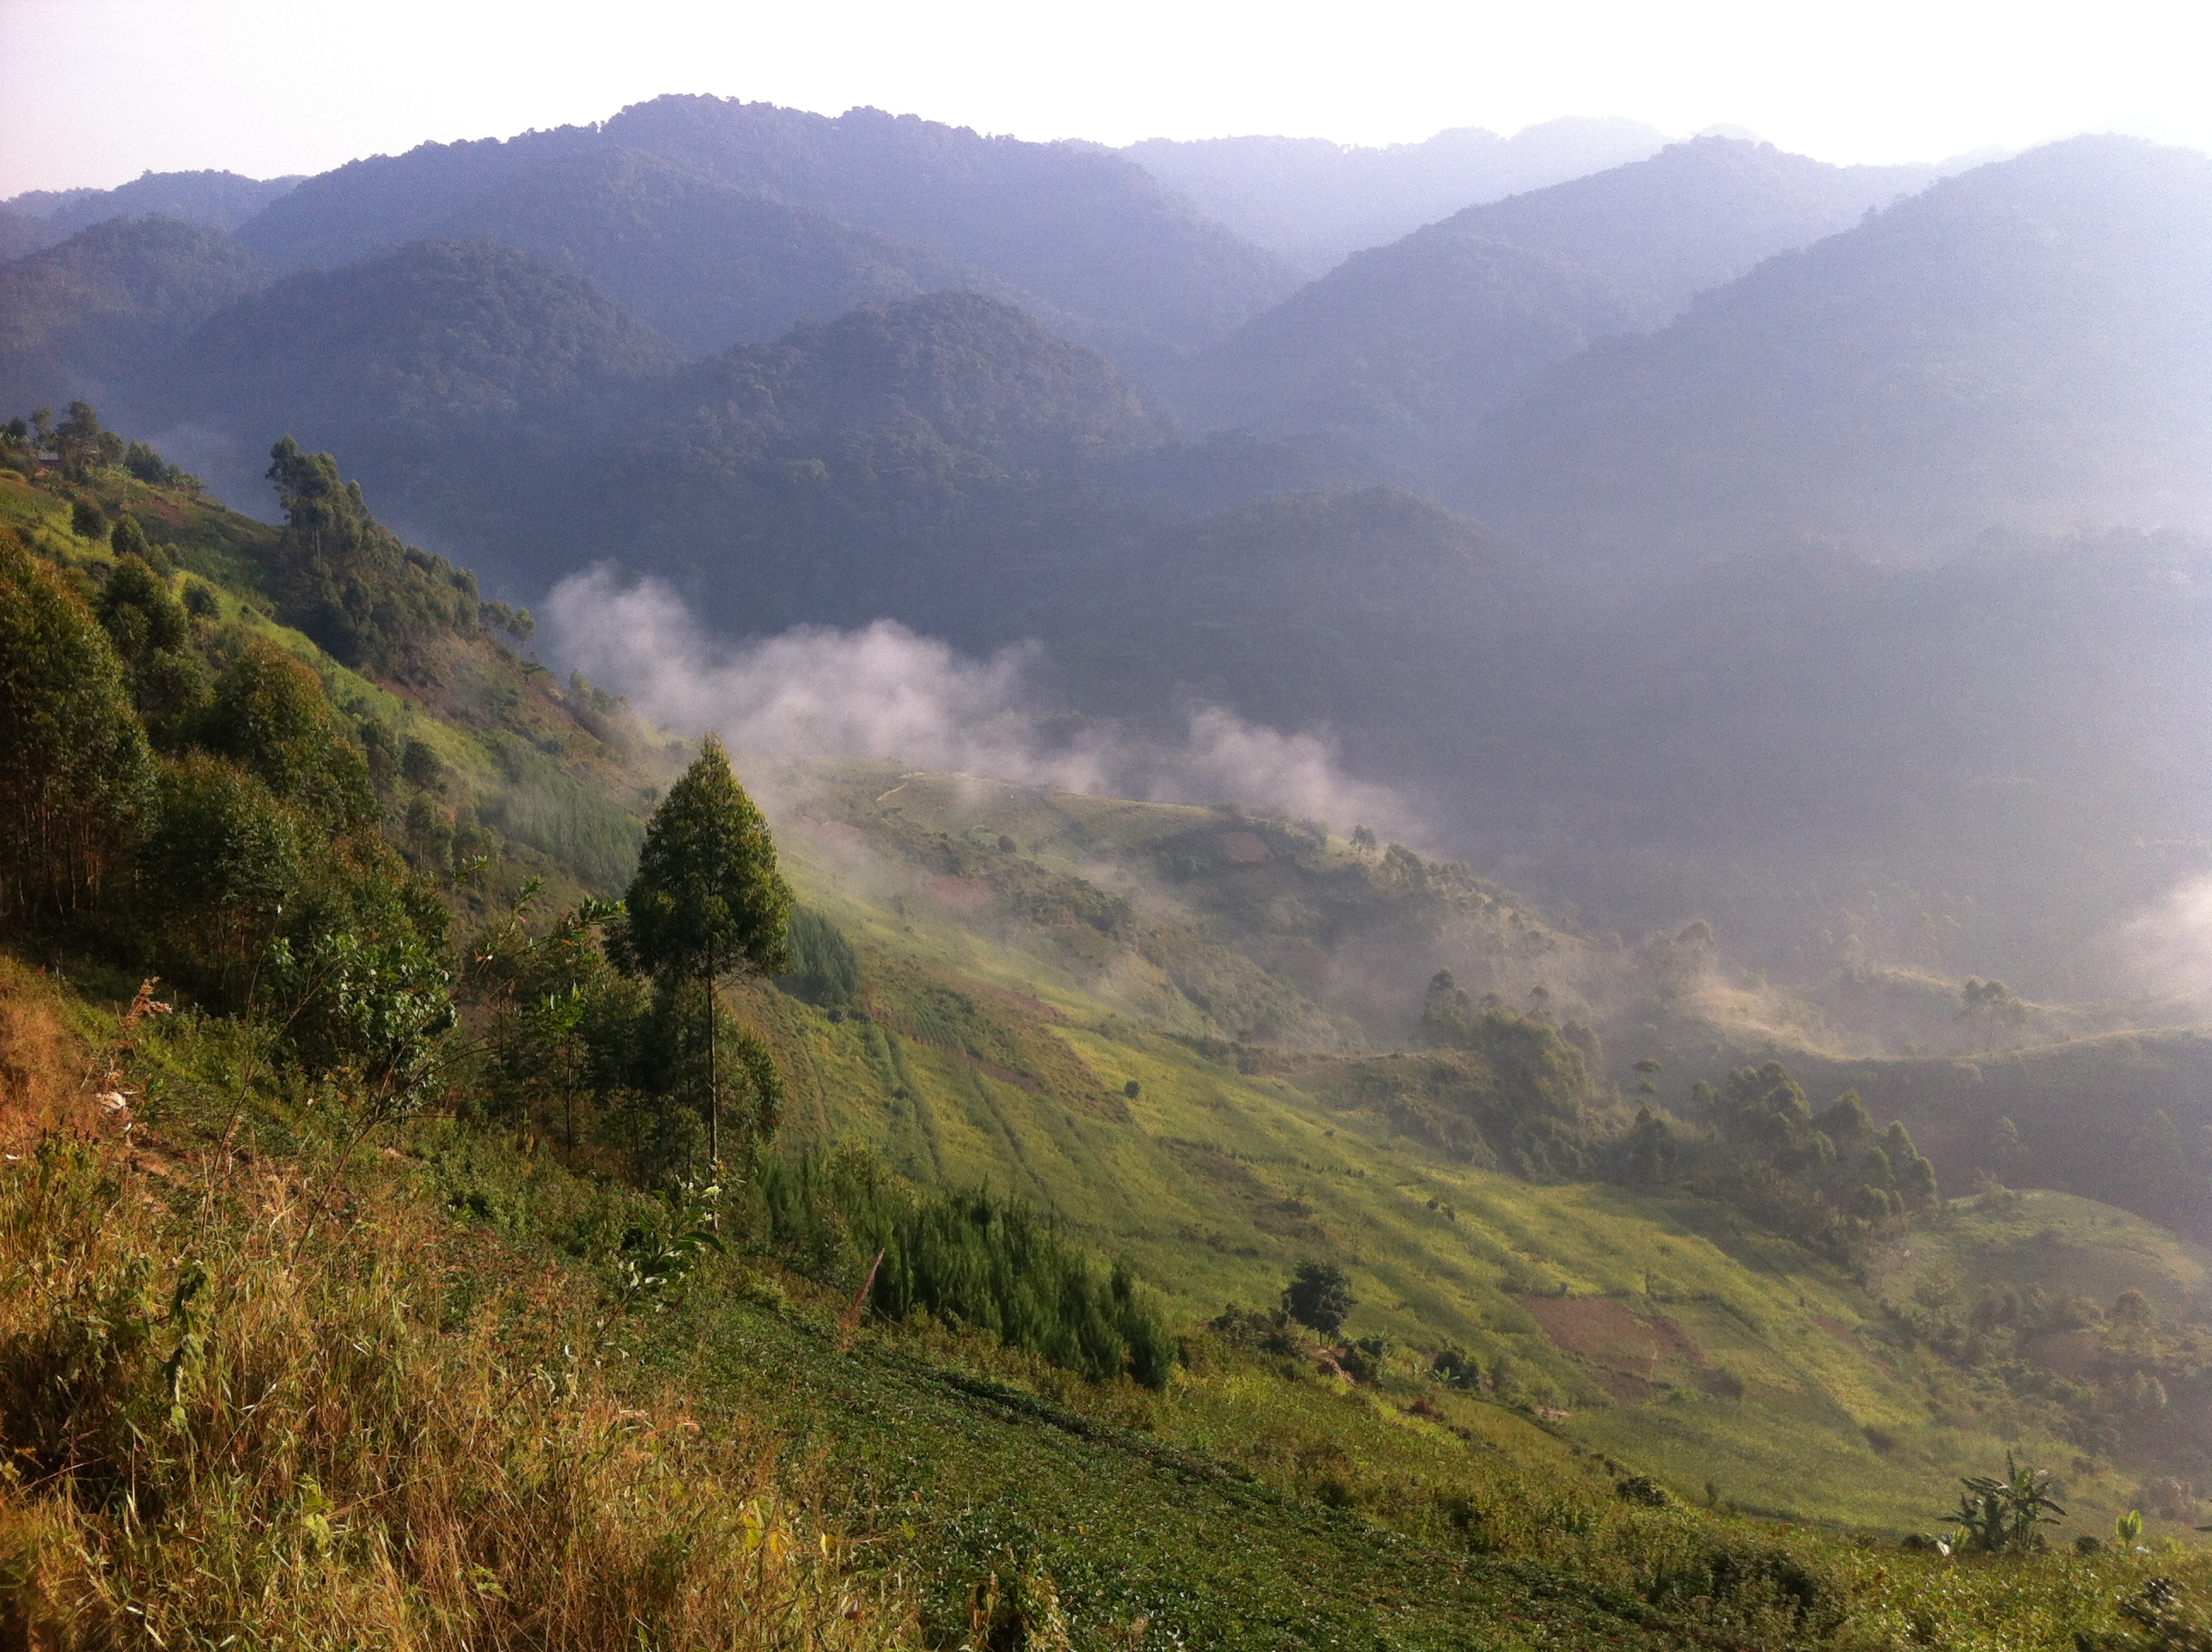 The edge of Bwindi Impenetrable National Park